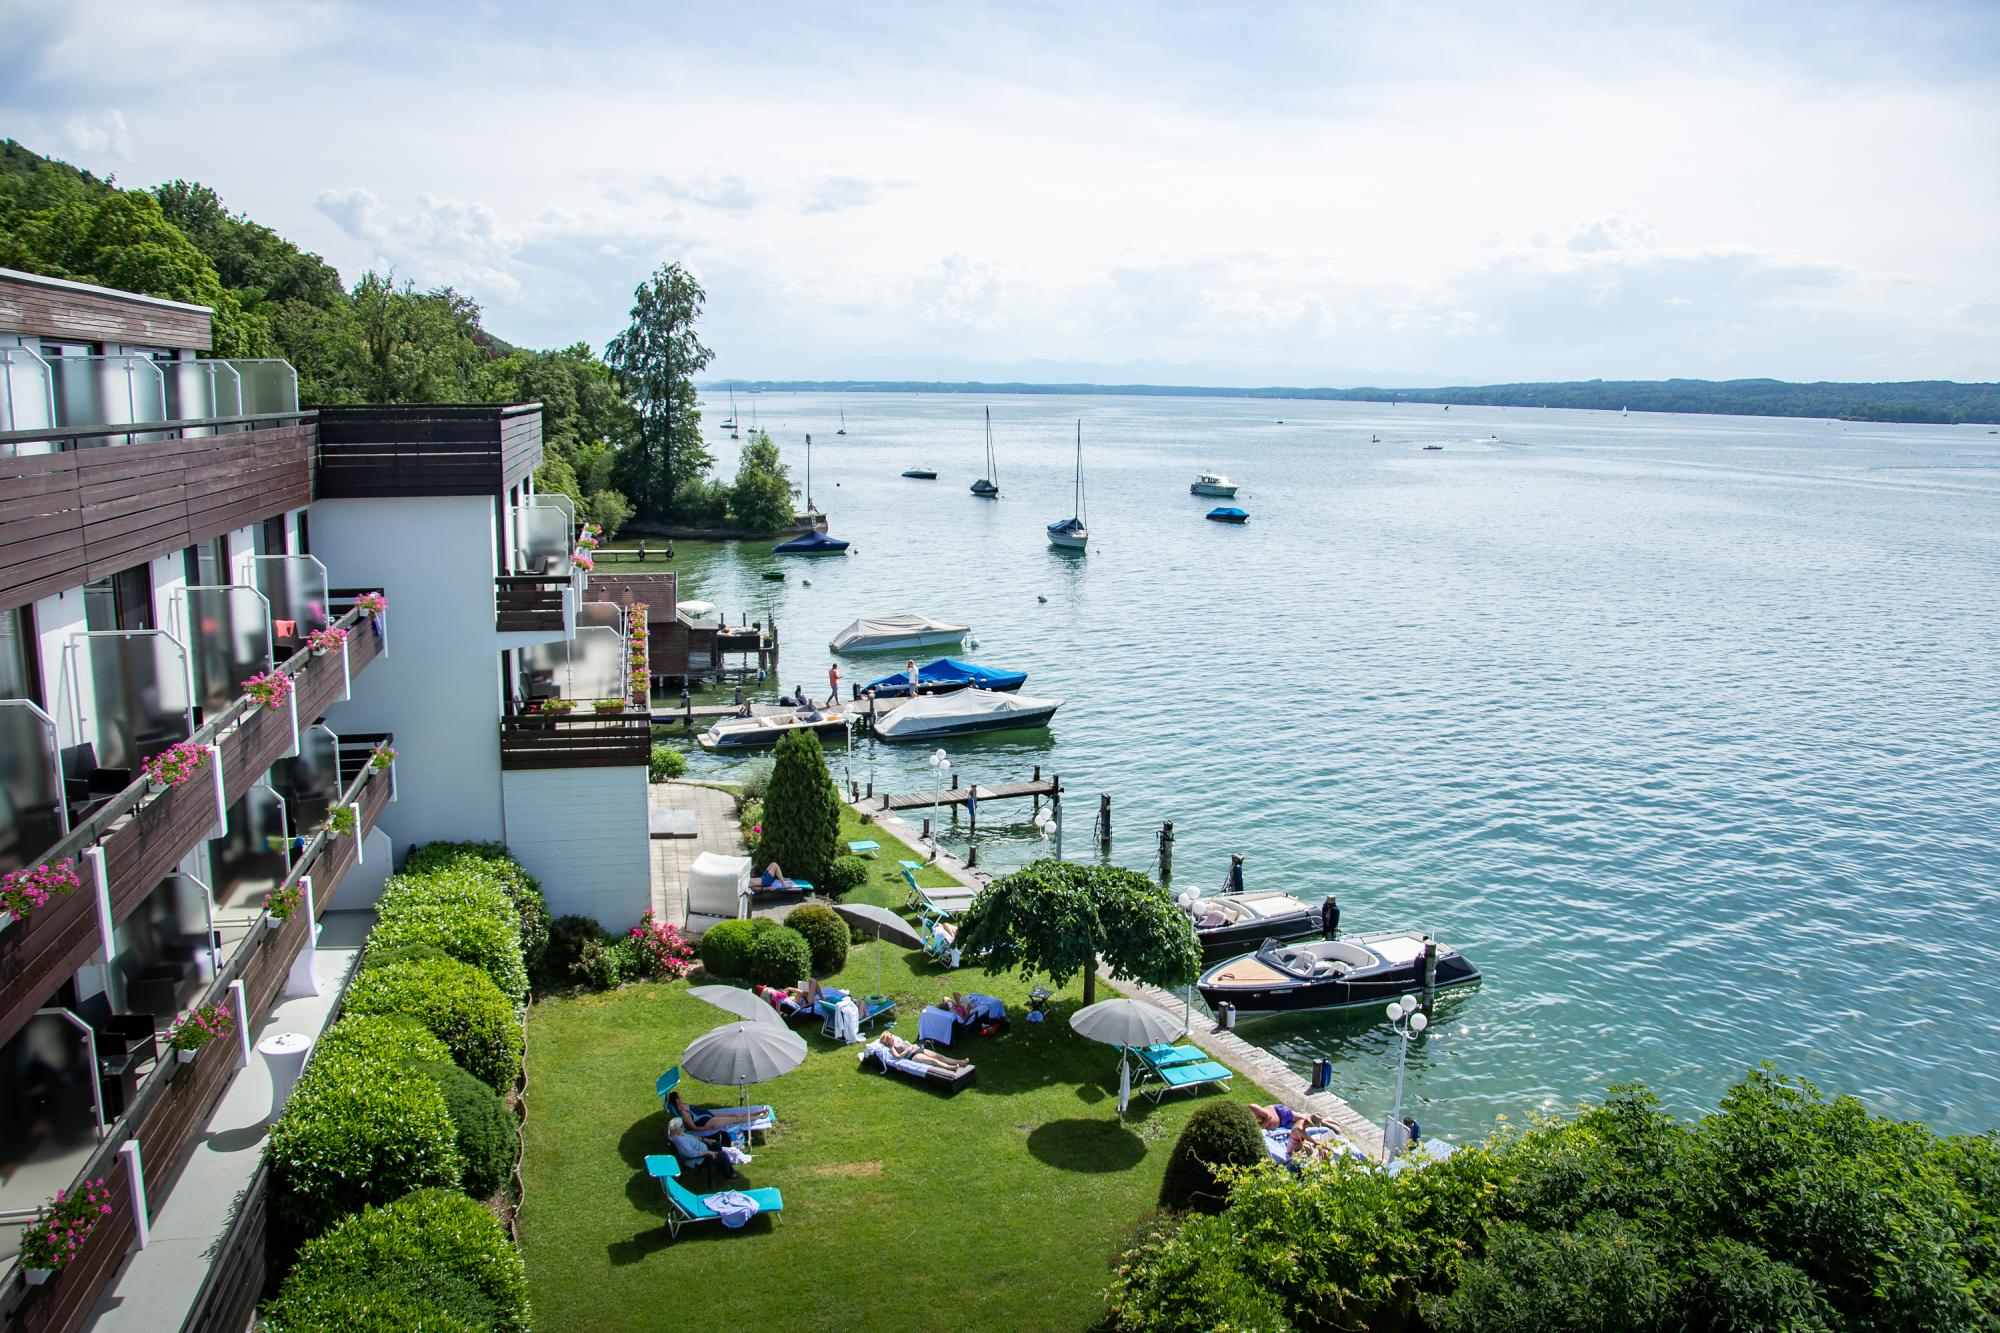 Seehotel Leoni in Berg am Starnberger See